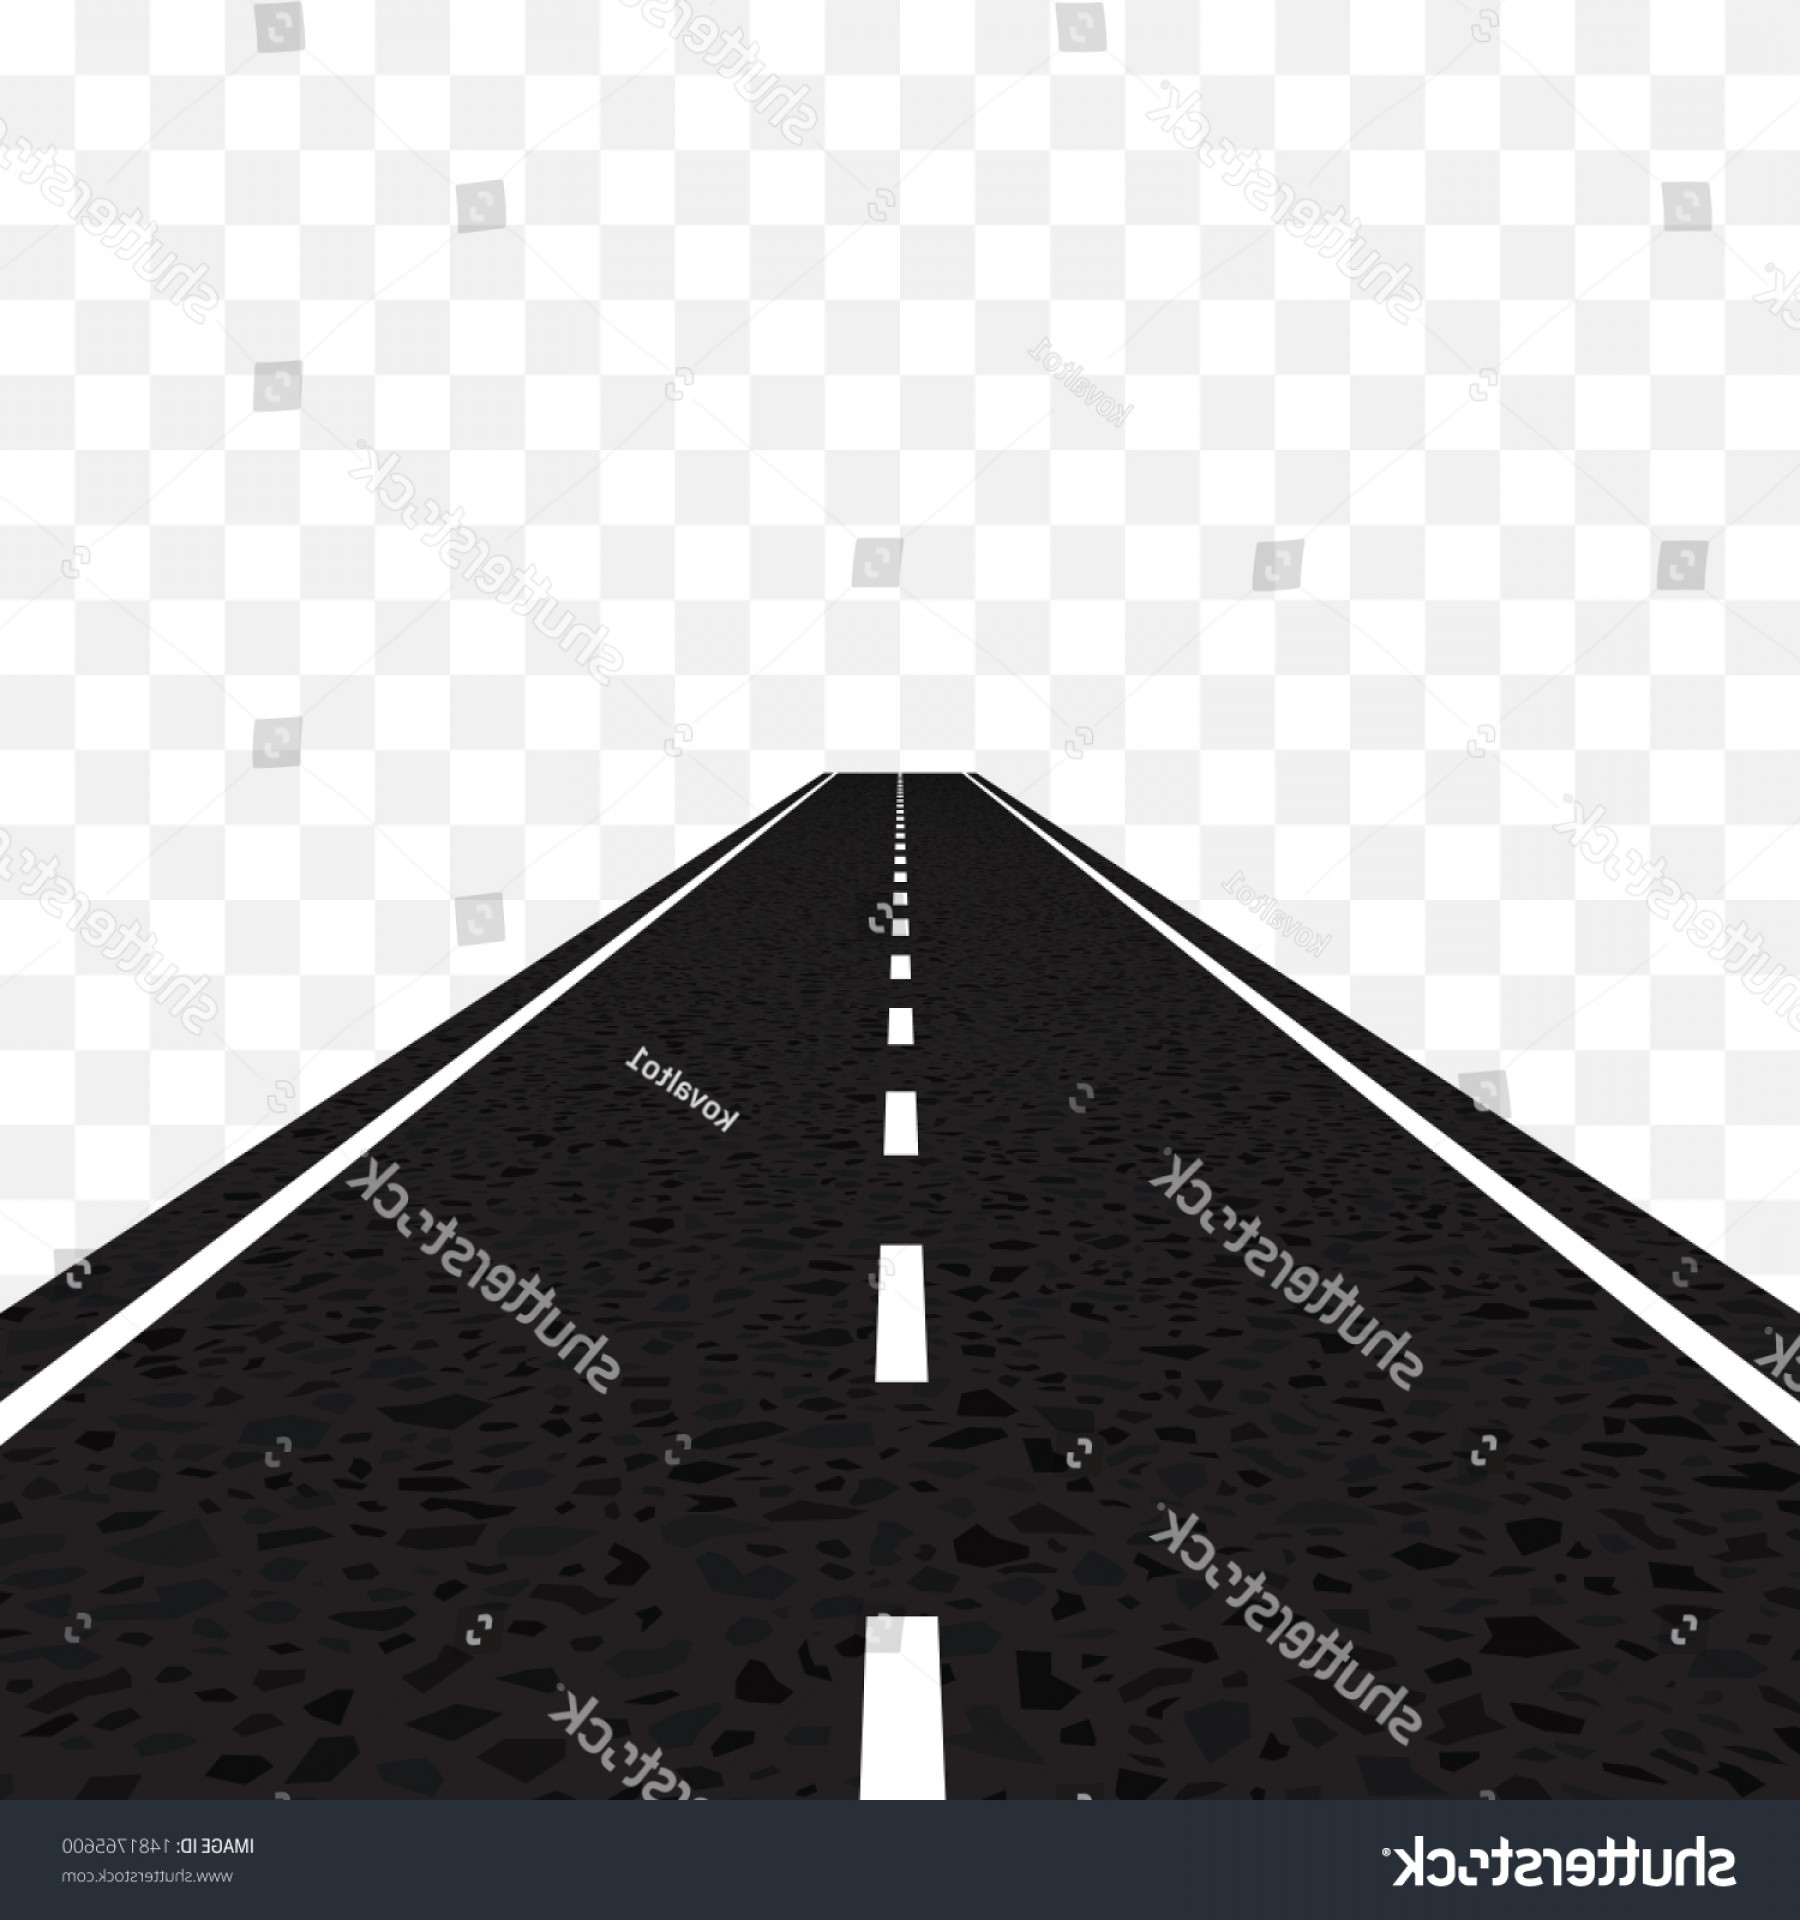 Perspective Vector: Road Linear Perspective Vector Illustration Isolated